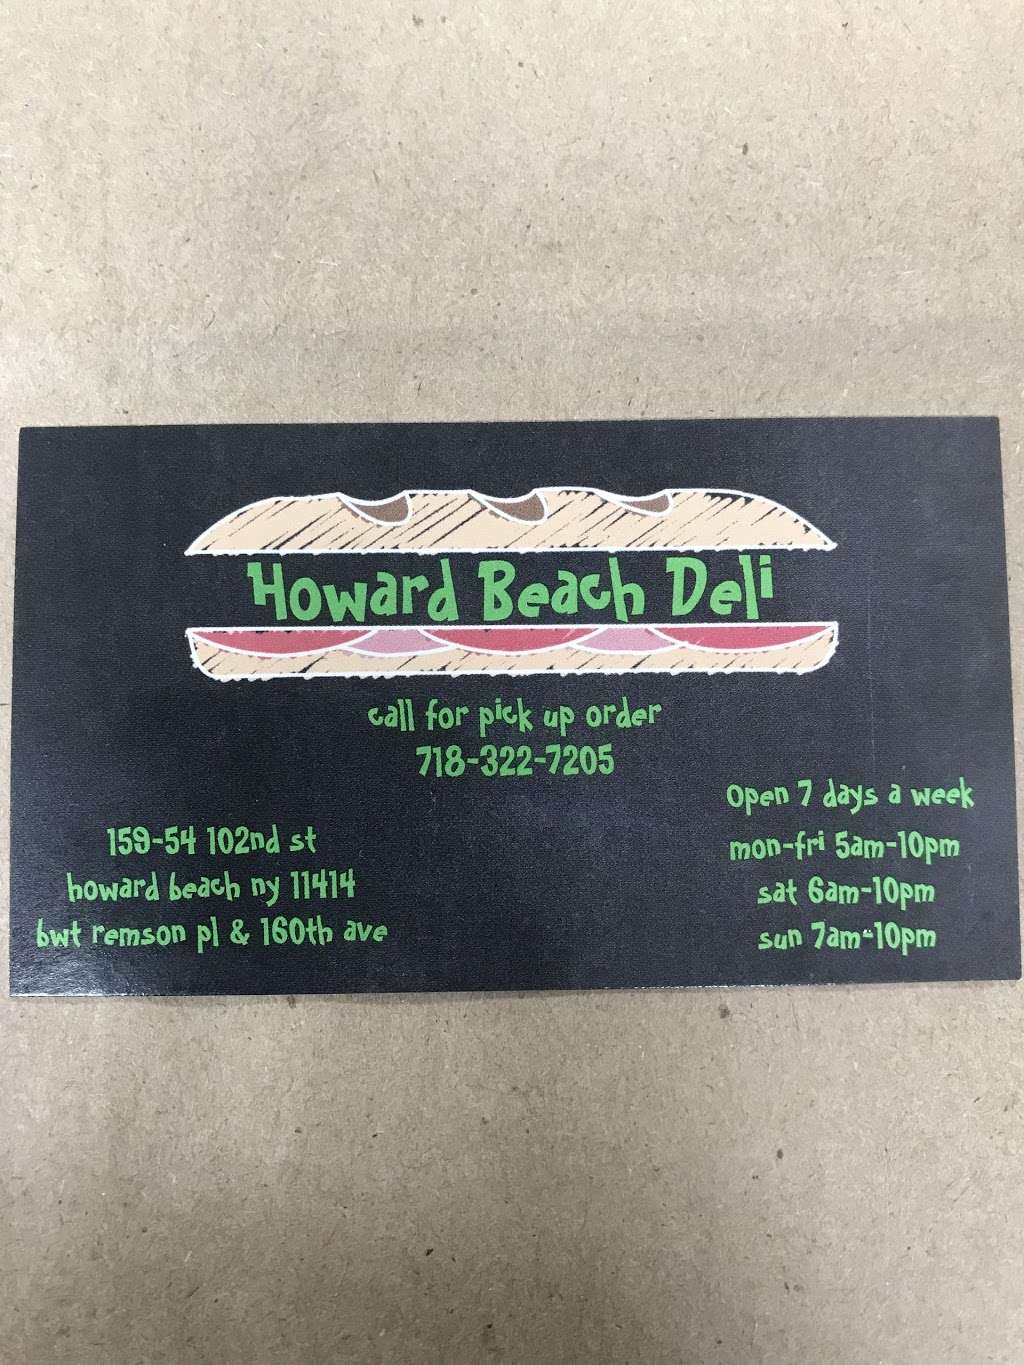 Howard Beach Deli - store  | Photo 5 of 8 | Address: 159-54 102nd St, Jamaica, NY 11414, USA | Phone: (718) 322-7205